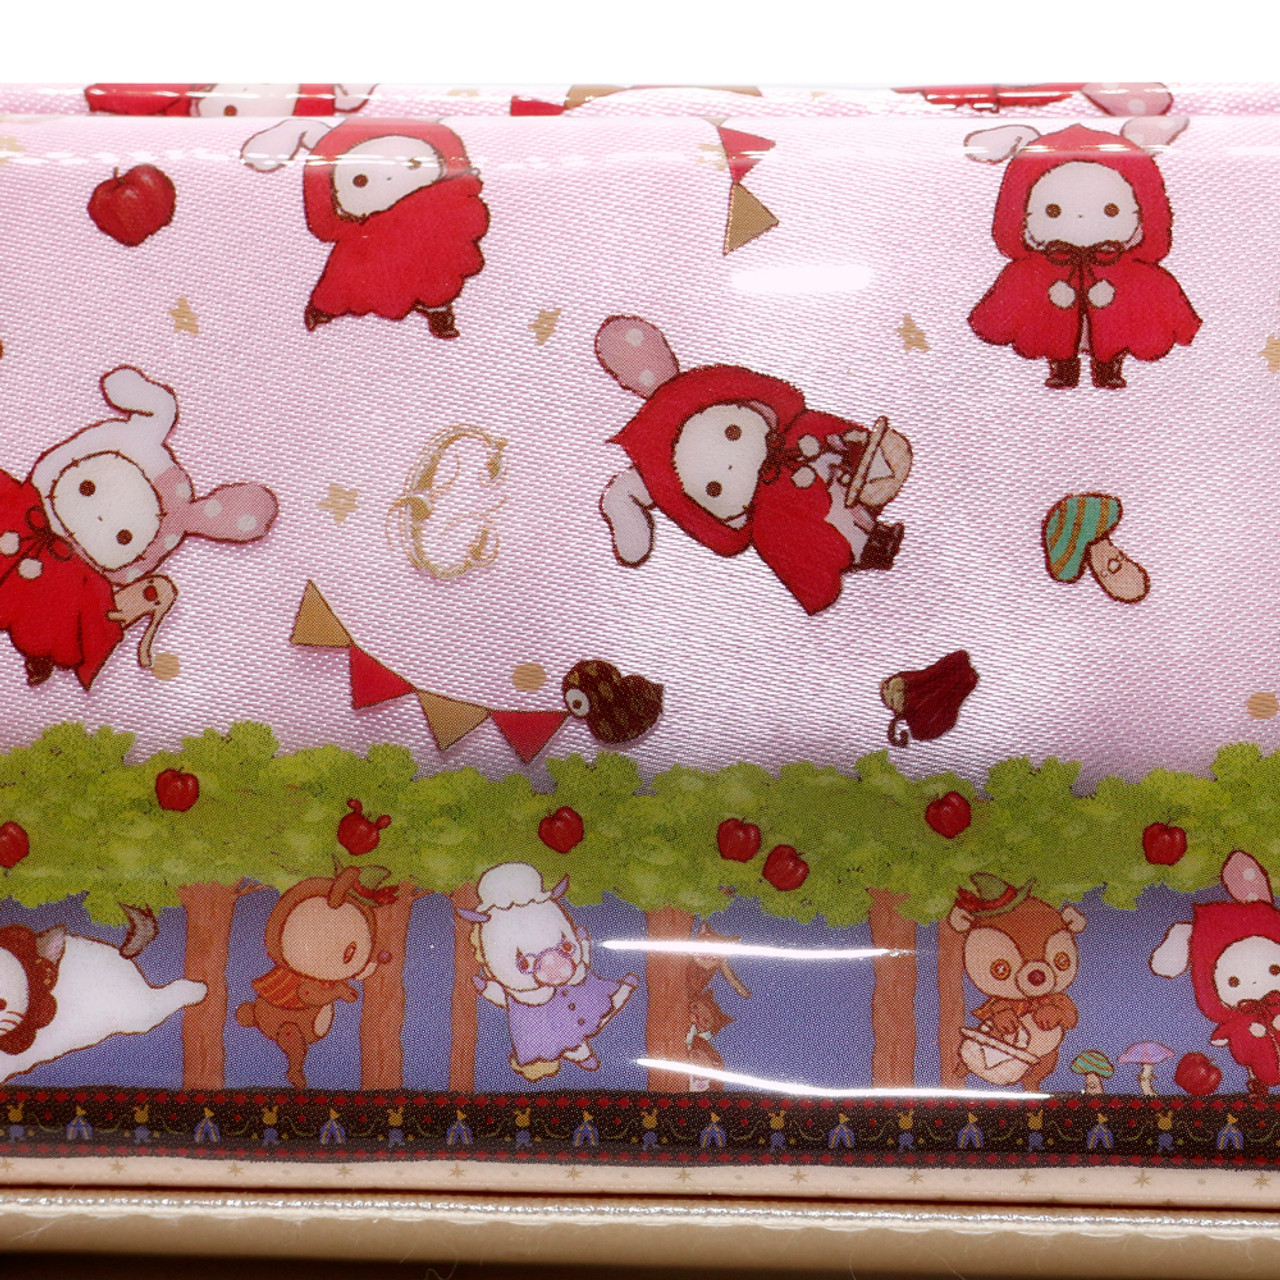 San-x Sentimental Circus Shappo Bunny Little Red Hood In Garden Pencil Case ( Close up )